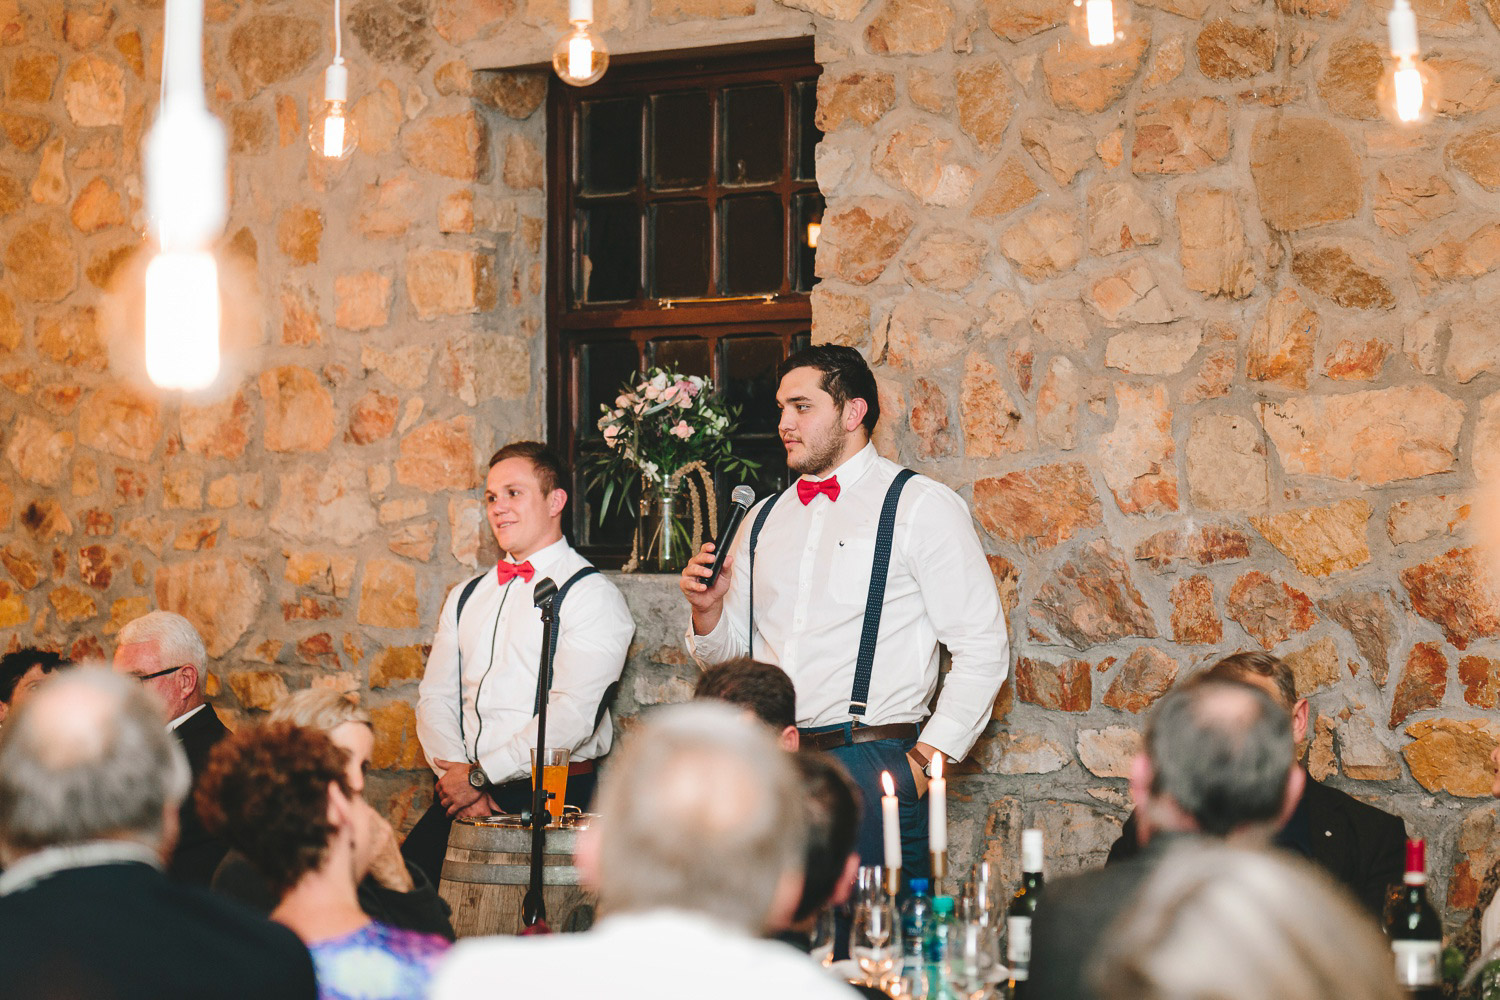 western-cape-photoghers-gen-scott-greyton-wedding-photography-charlie-ray141.jpg